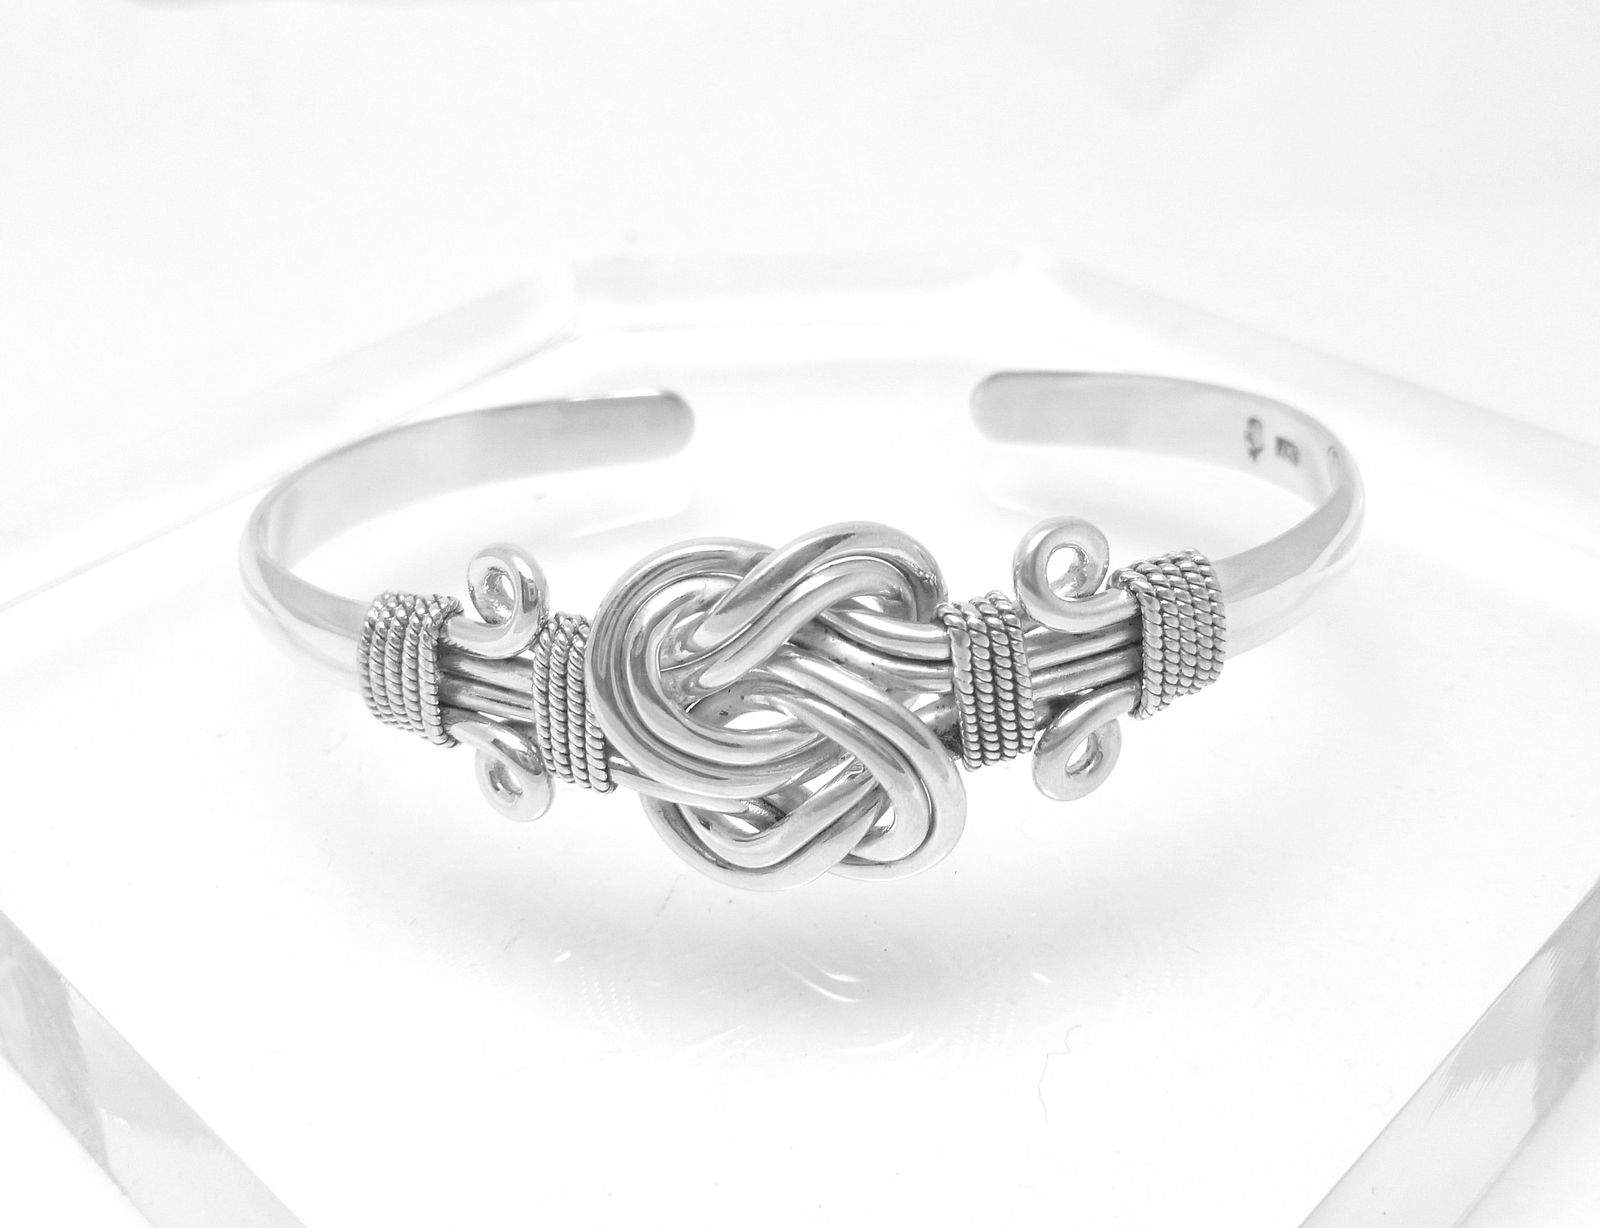 Artisan Crafted Sterling Sterling Knot Cuff Bracelet 7 inch Oxidized Finish